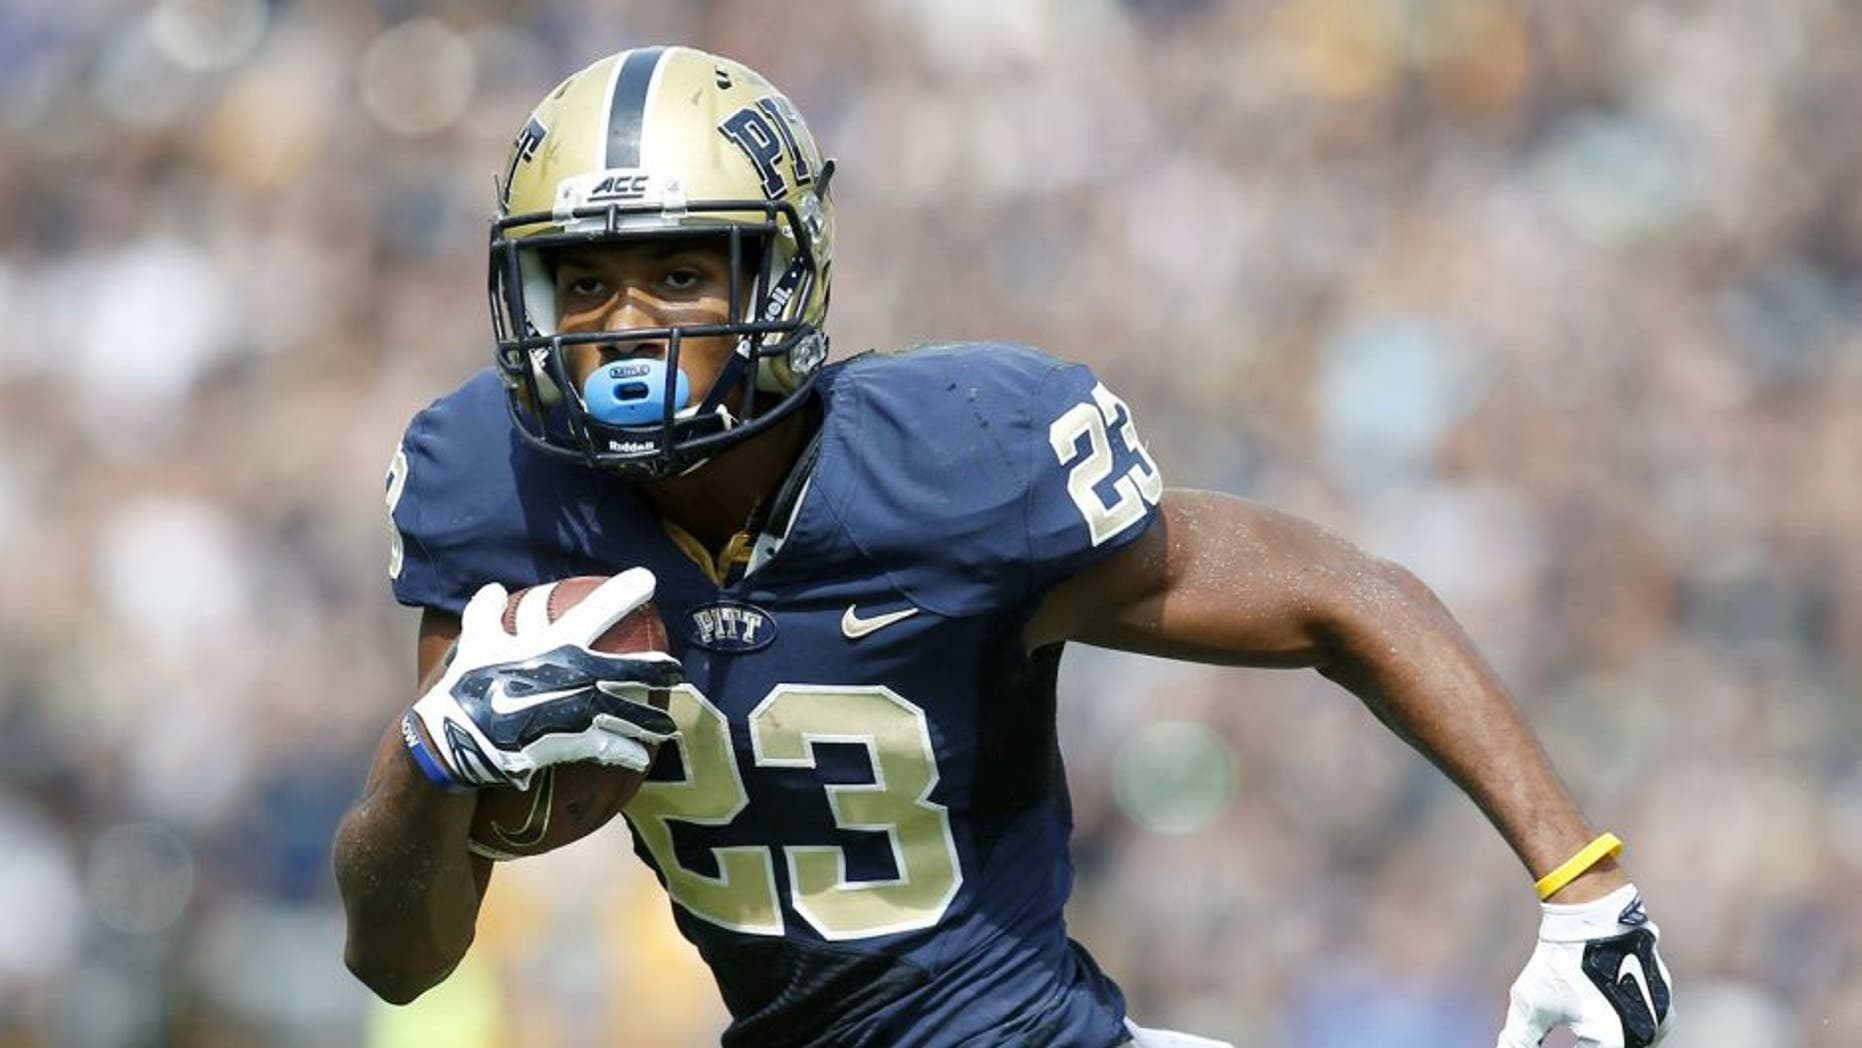 Sep 20, 2014; Pittsburgh, PA, USA; Pittsburgh Panthers wide receiver Tyler Boyd (23) runs after a pass reception against the Iowa Hawkeyes during the second quarter at Heinz Field. Mandatory Credit: Charles LeClaire-USA TODAY Sports